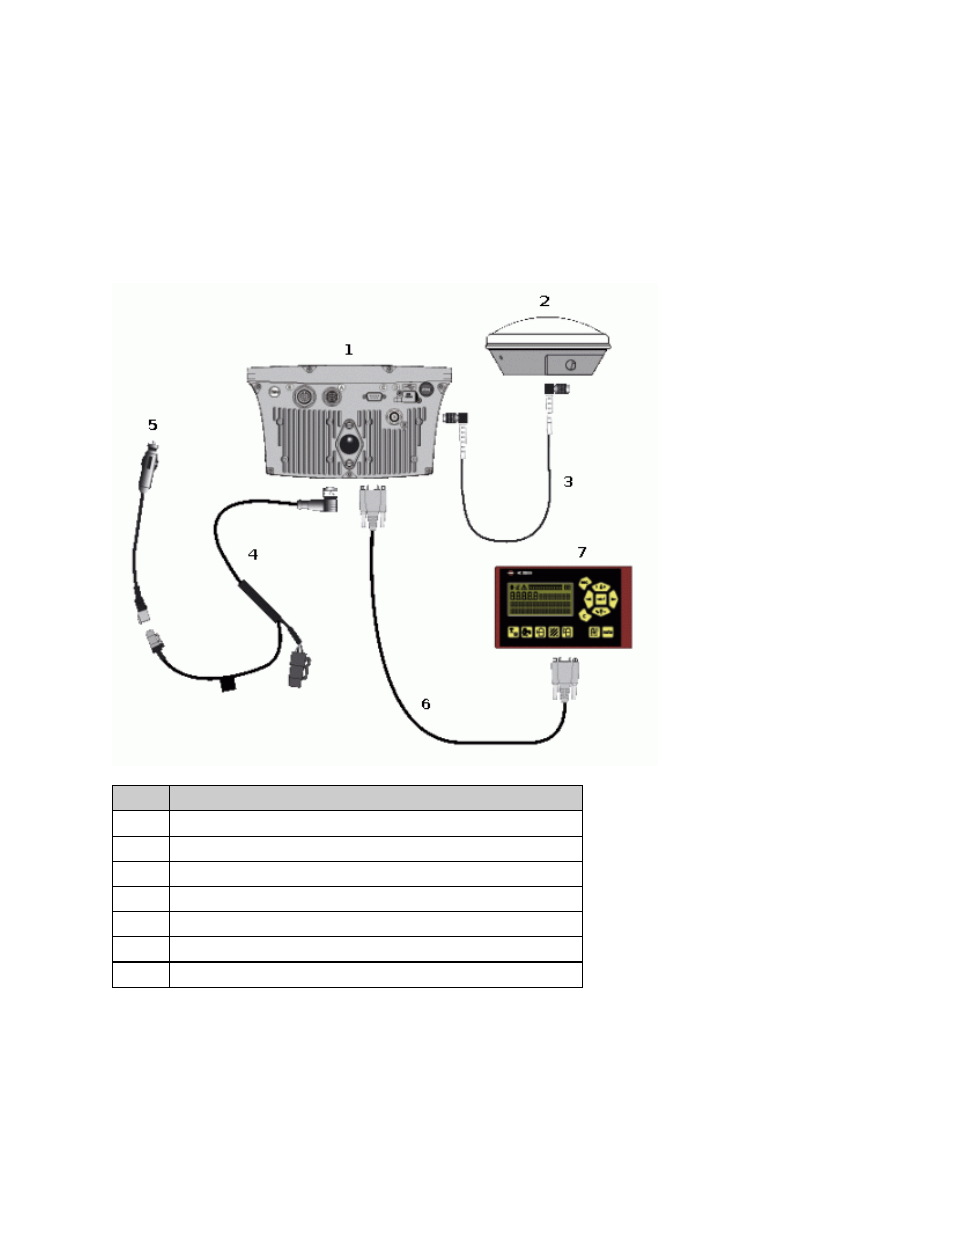 Hardi 5500 variable rate controller connecting a hardi 5500 hardi 5500 variable rate controller connecting a hardi 5500 controller ag leader ez guide 500 variable rate getting started guide user manual page 17 sciox Images